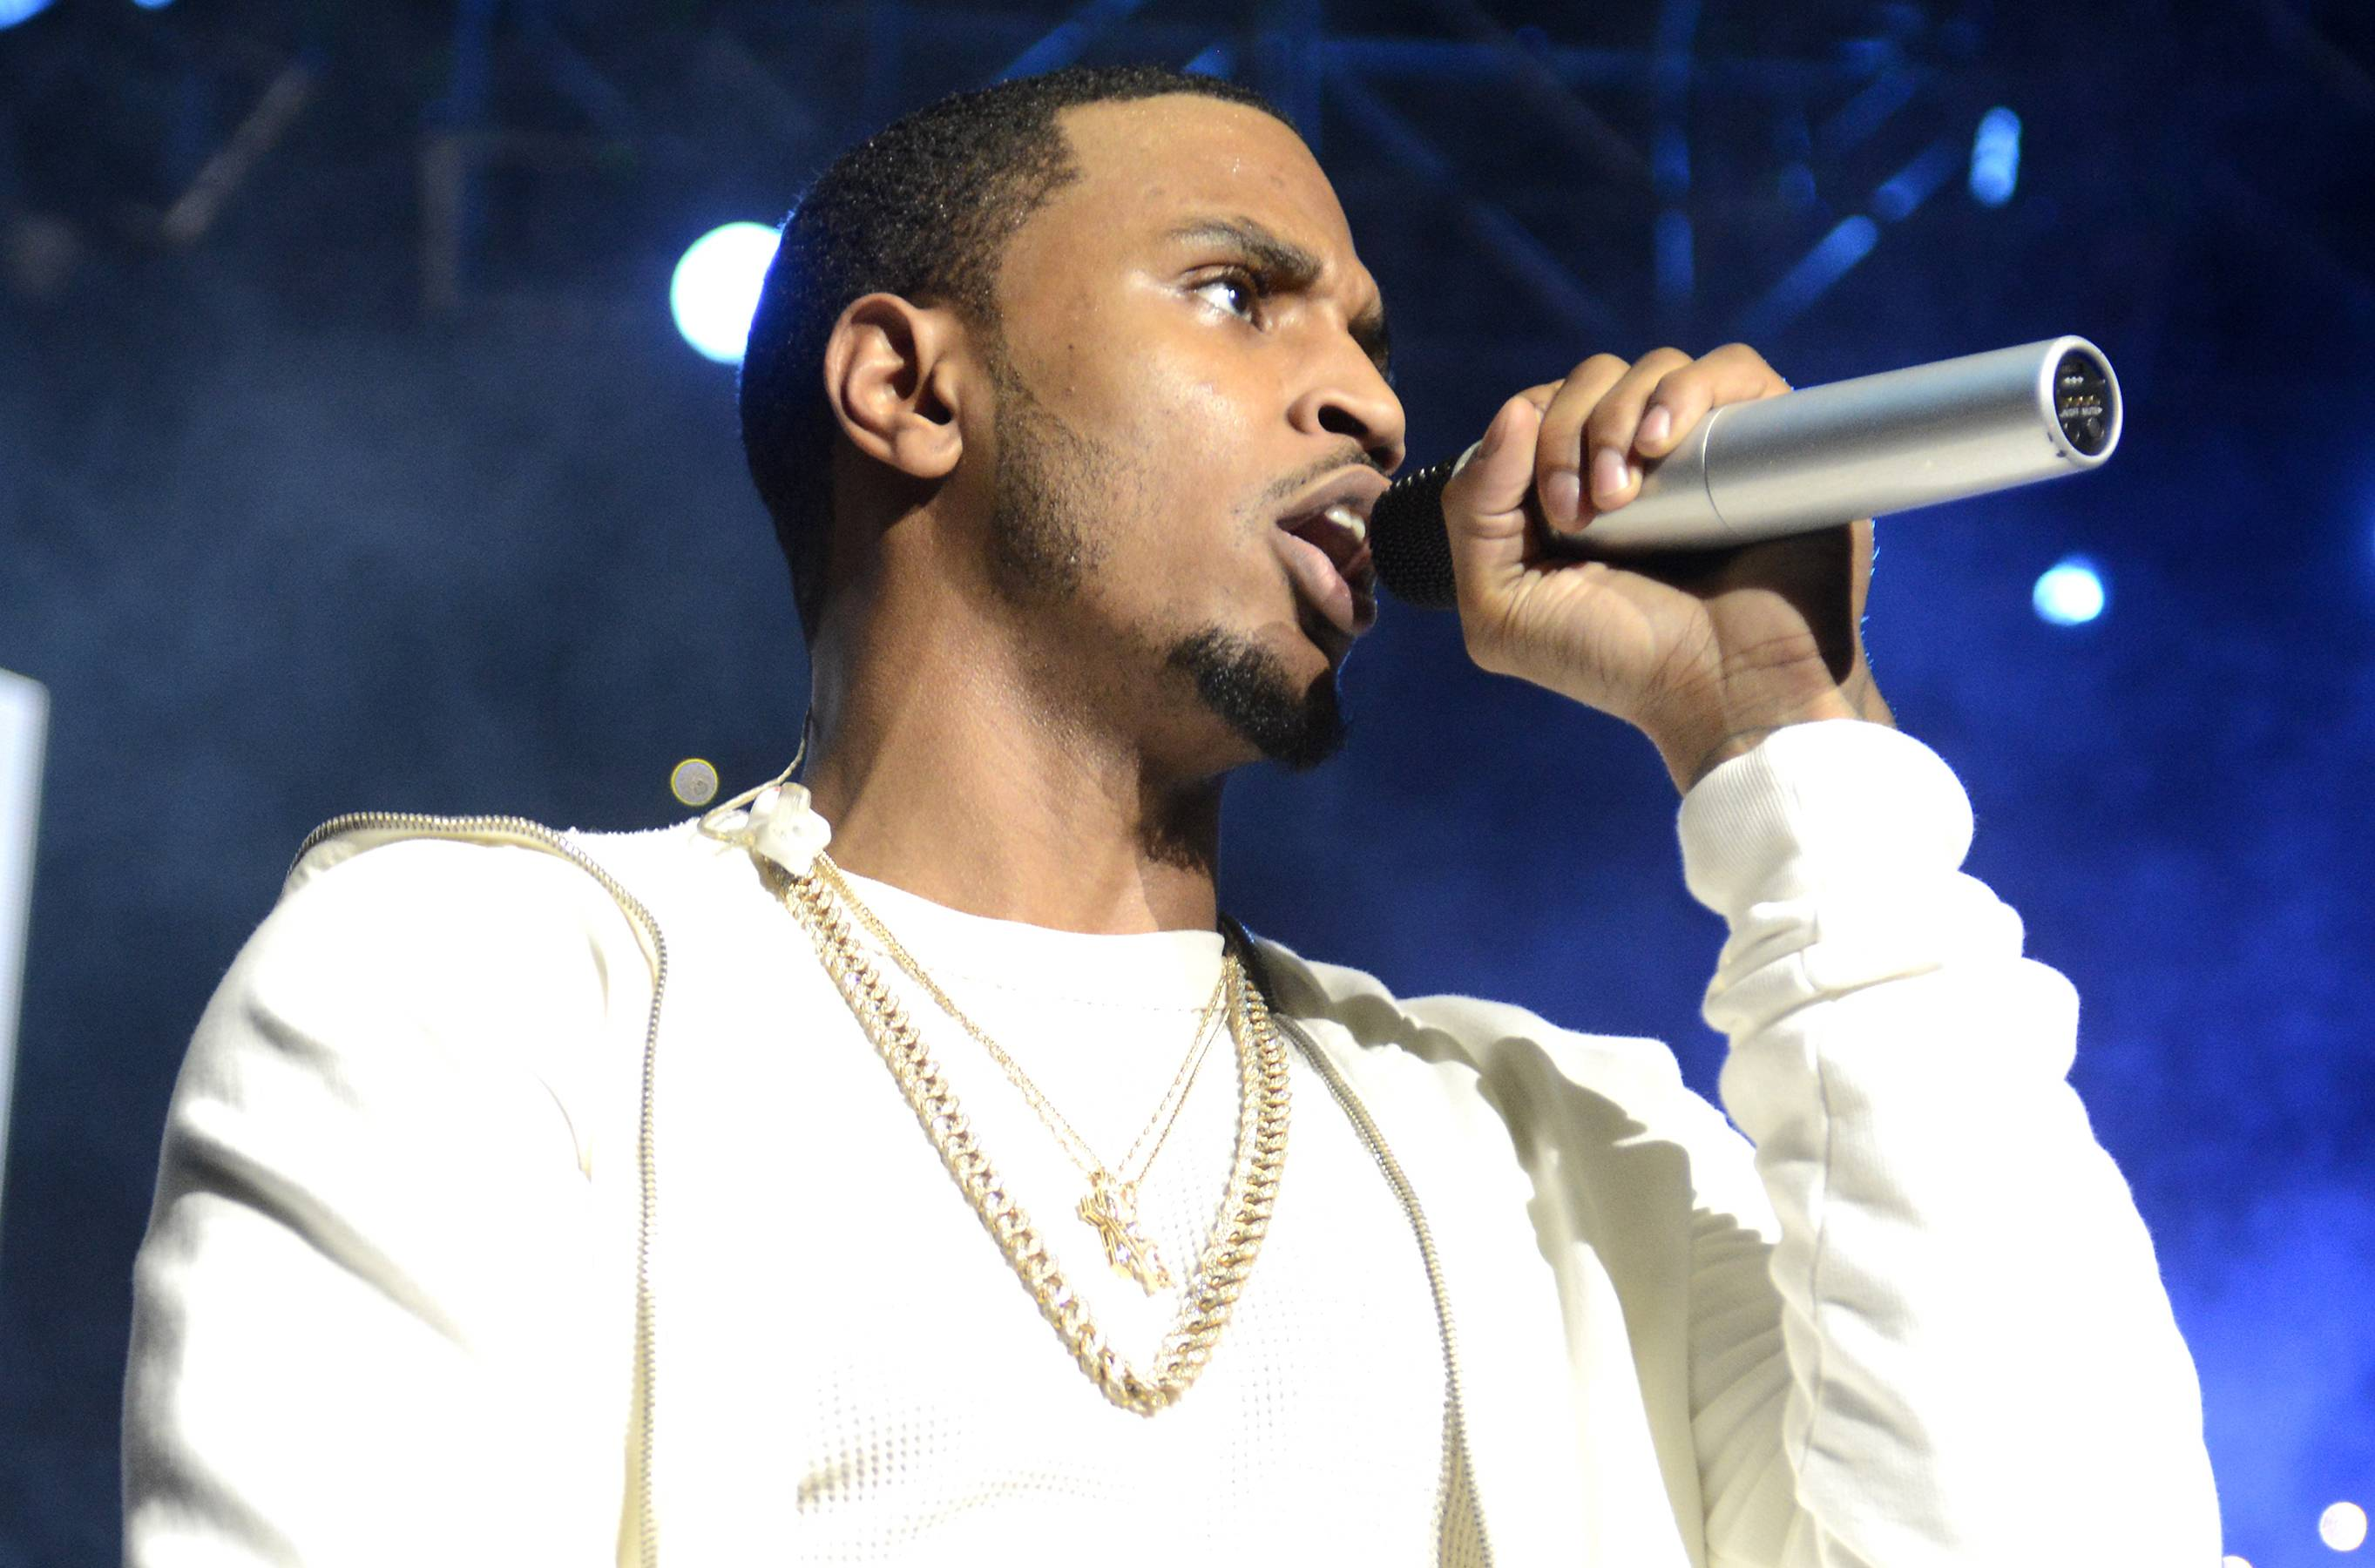 Trey Songz - Ladies, which one y'all want to go home with TRIGGA? The handsome Trey Songz will grace the stage for The BET Honors '15 and spice up the show with his flirtatious lyrics and steamy vocals. (Photo: Tim Mosenfelder/Getty Images)